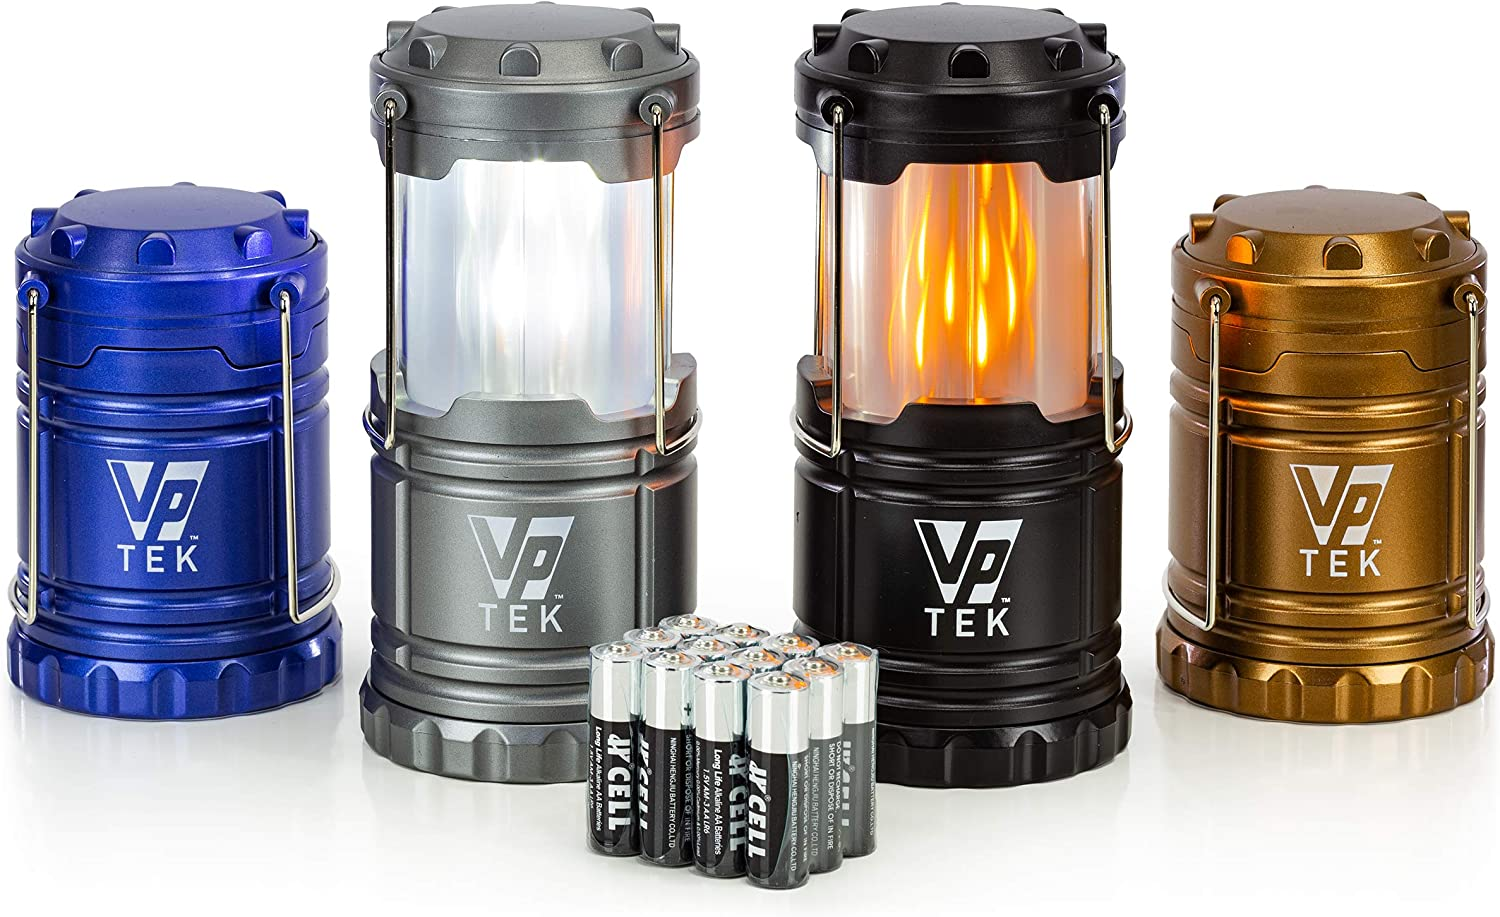 VP TEK Dual Function Collapsible LED Camping Lanterns with Flickering Flame Light and Bright LED Light (Pack of 4)